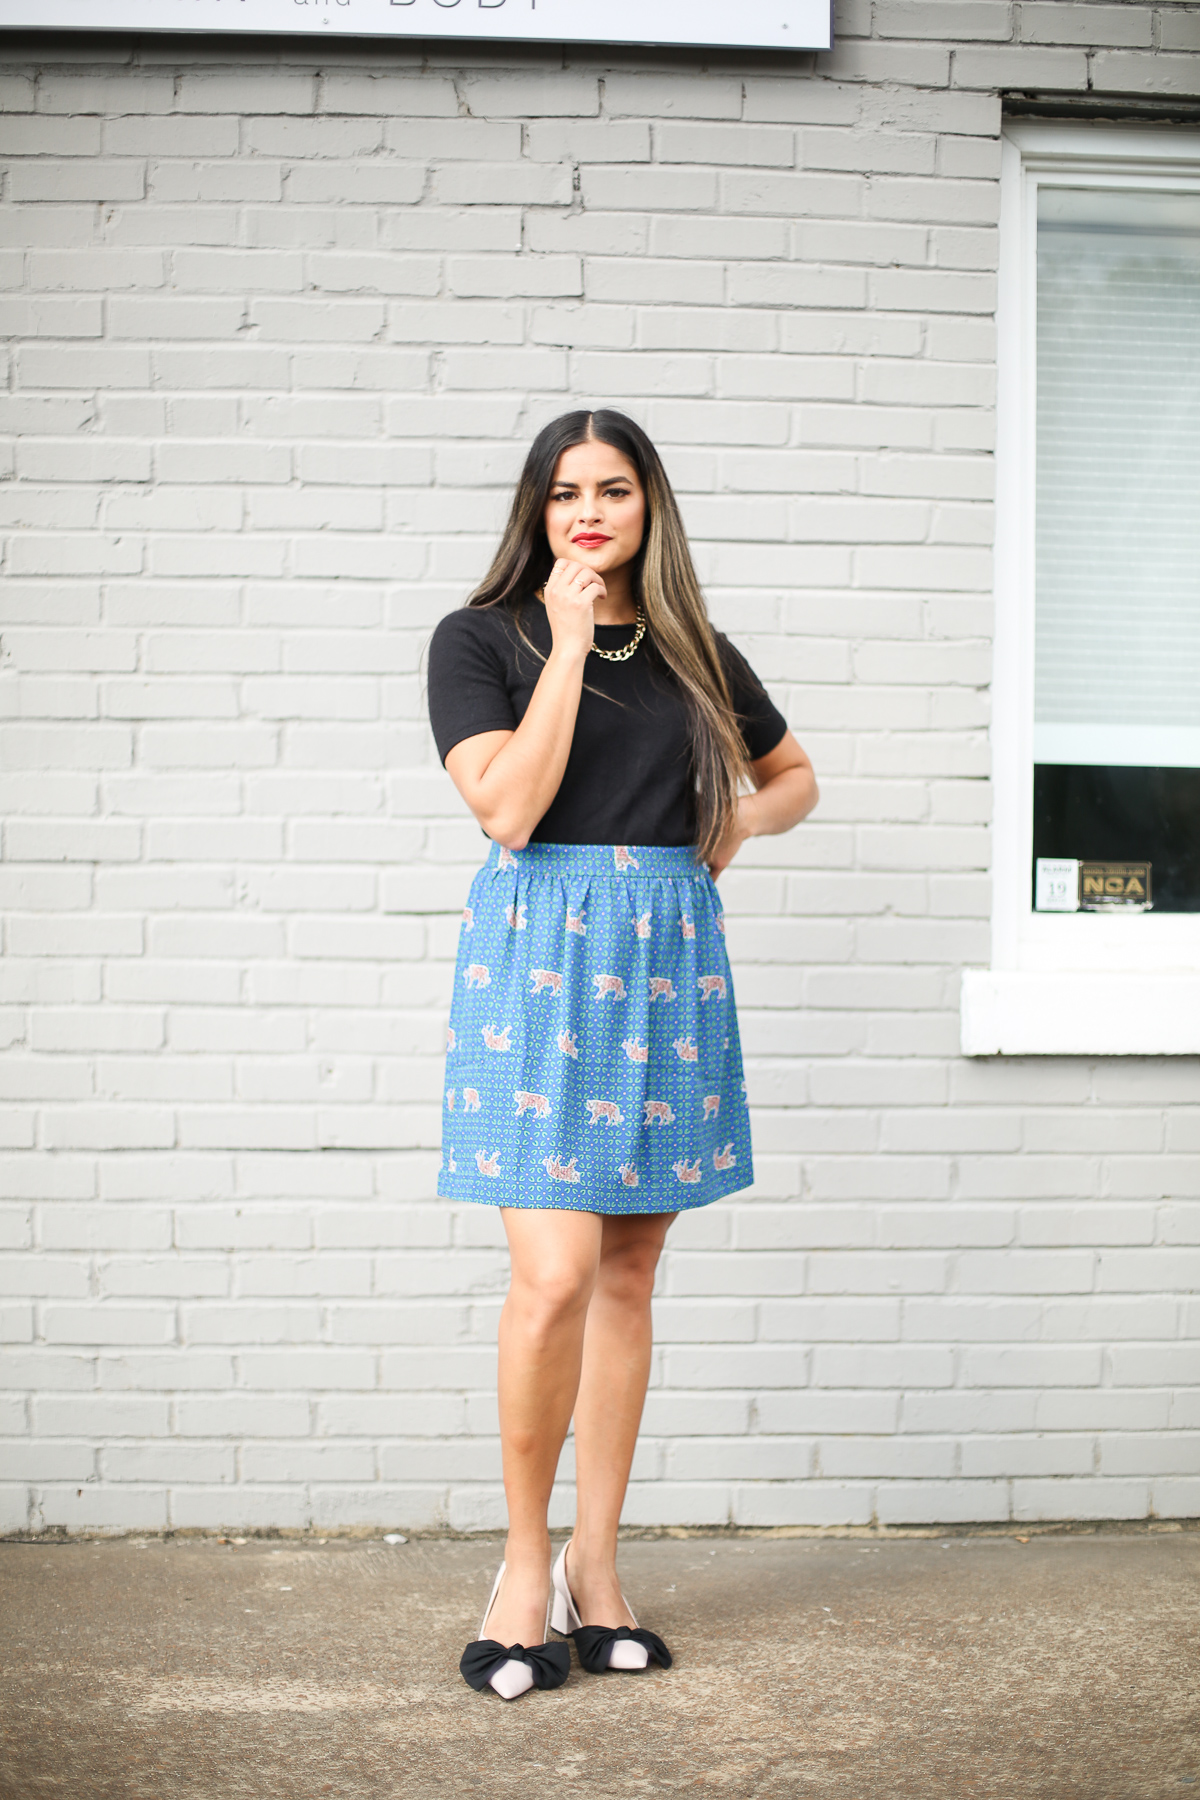 Priya the Blog, Nashville fashion blog, Nashville fashion blogger, Nashville style blog, Nashville style blogger, Fall outfit with graphic skirt, J.Crew tiger skirt, Zara block bow heels, wear to work outfit for Fall, how to wear a chunky gold chain necklace, J.Crew Factory tiger skirt, Fall office outfit, Fall fashion, Zara heels